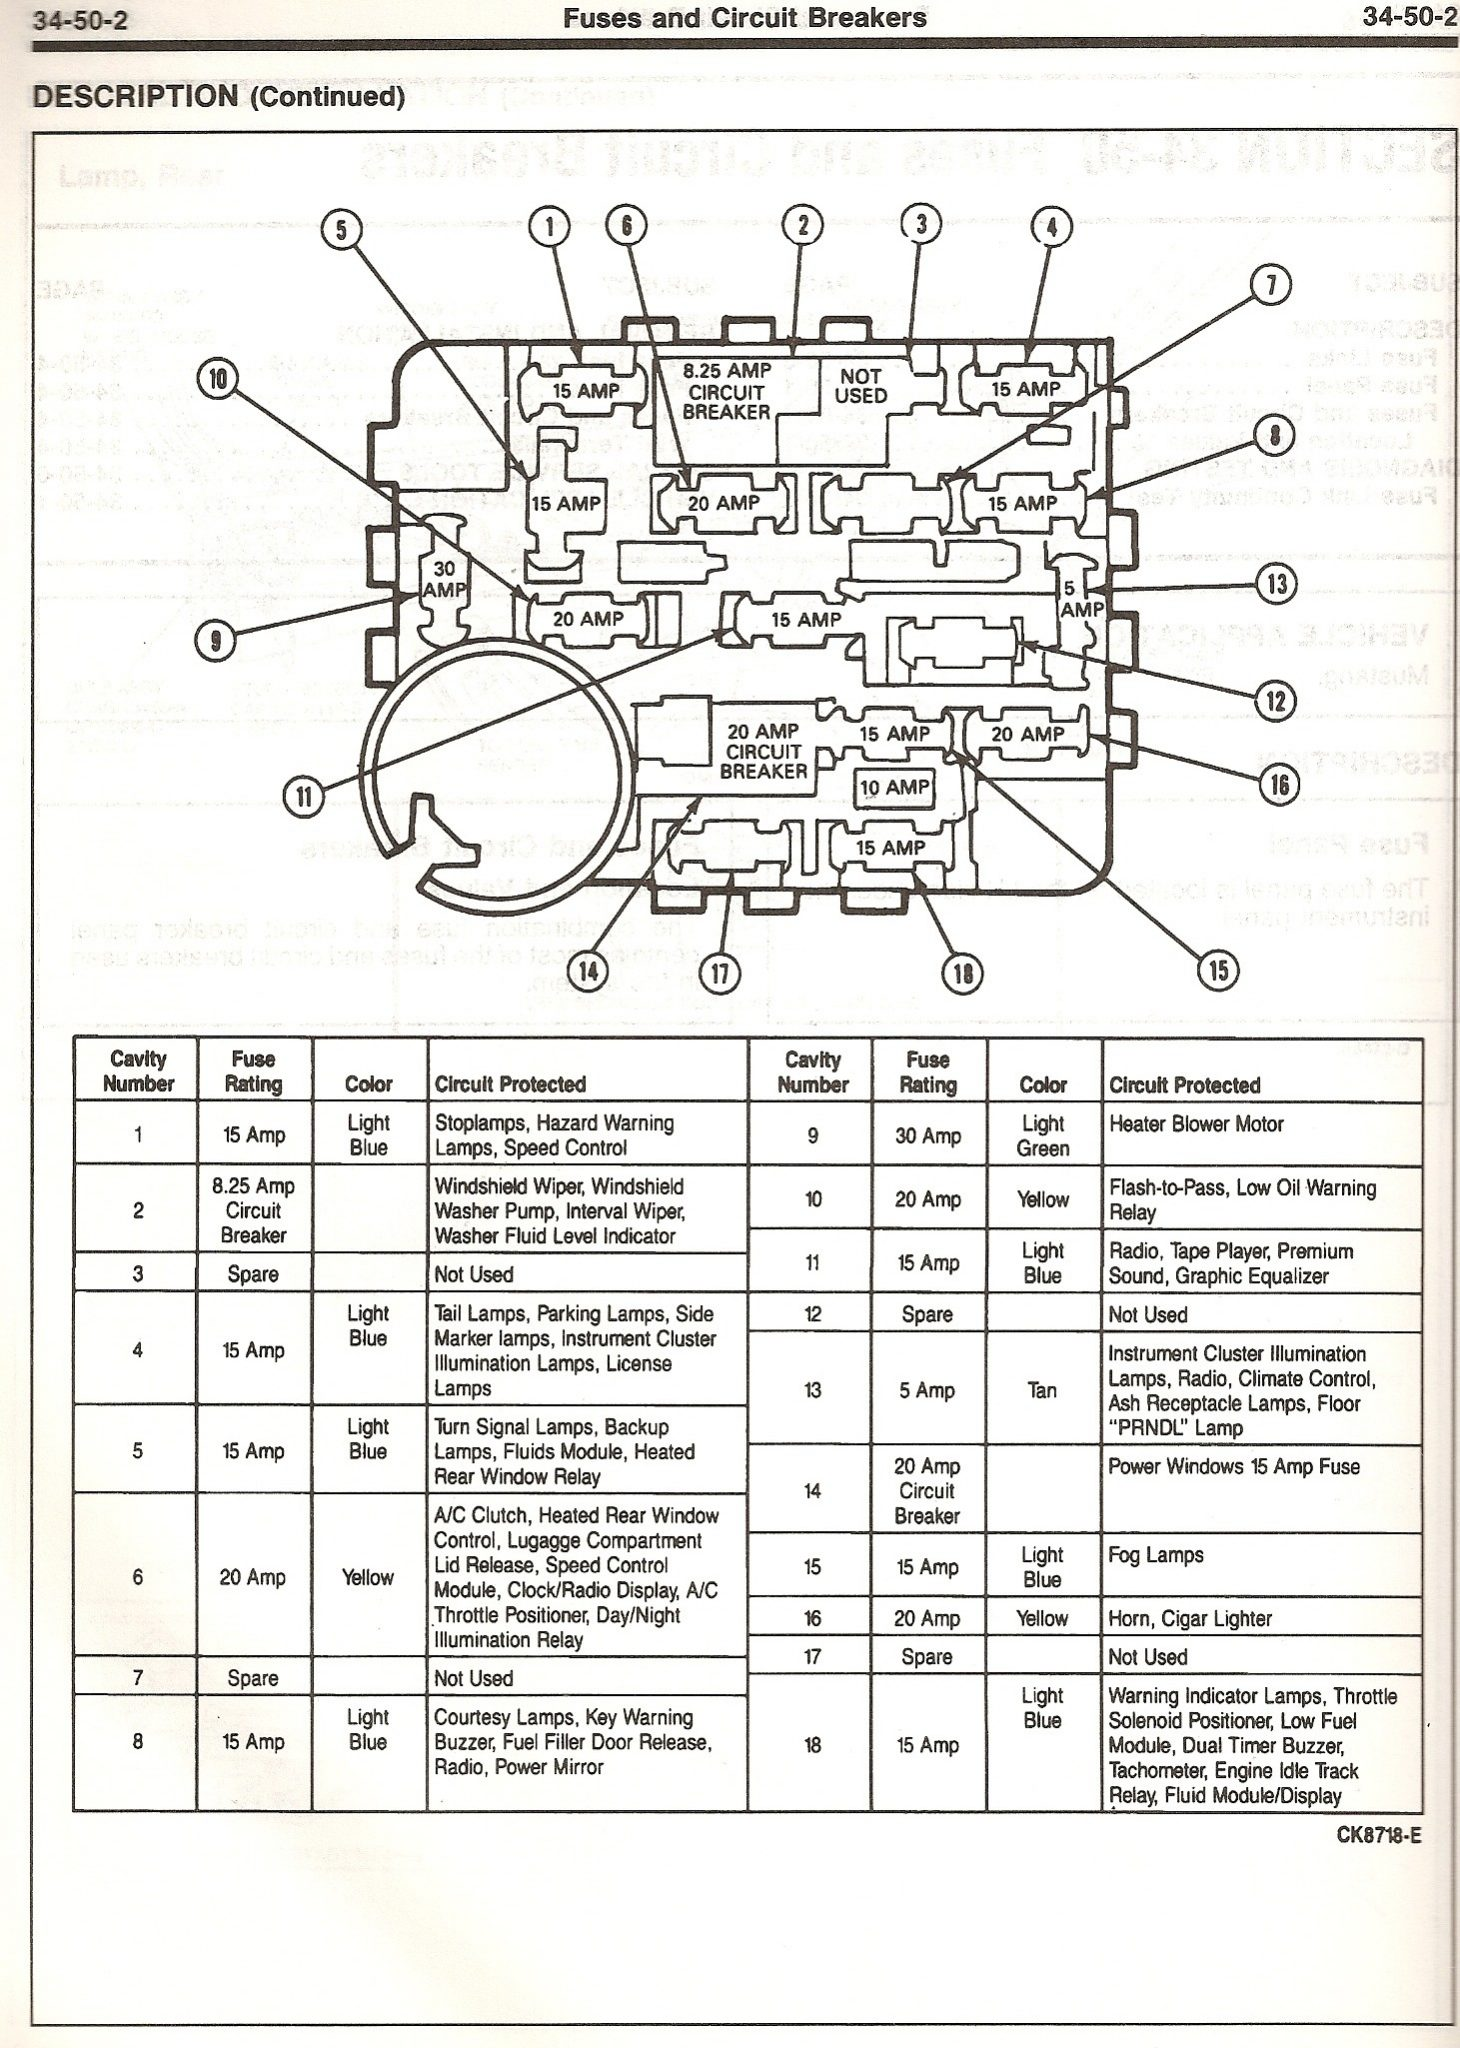 93 mustang fuse diagram online circuit wiring diagram u2022 rh electrobuddha co uk